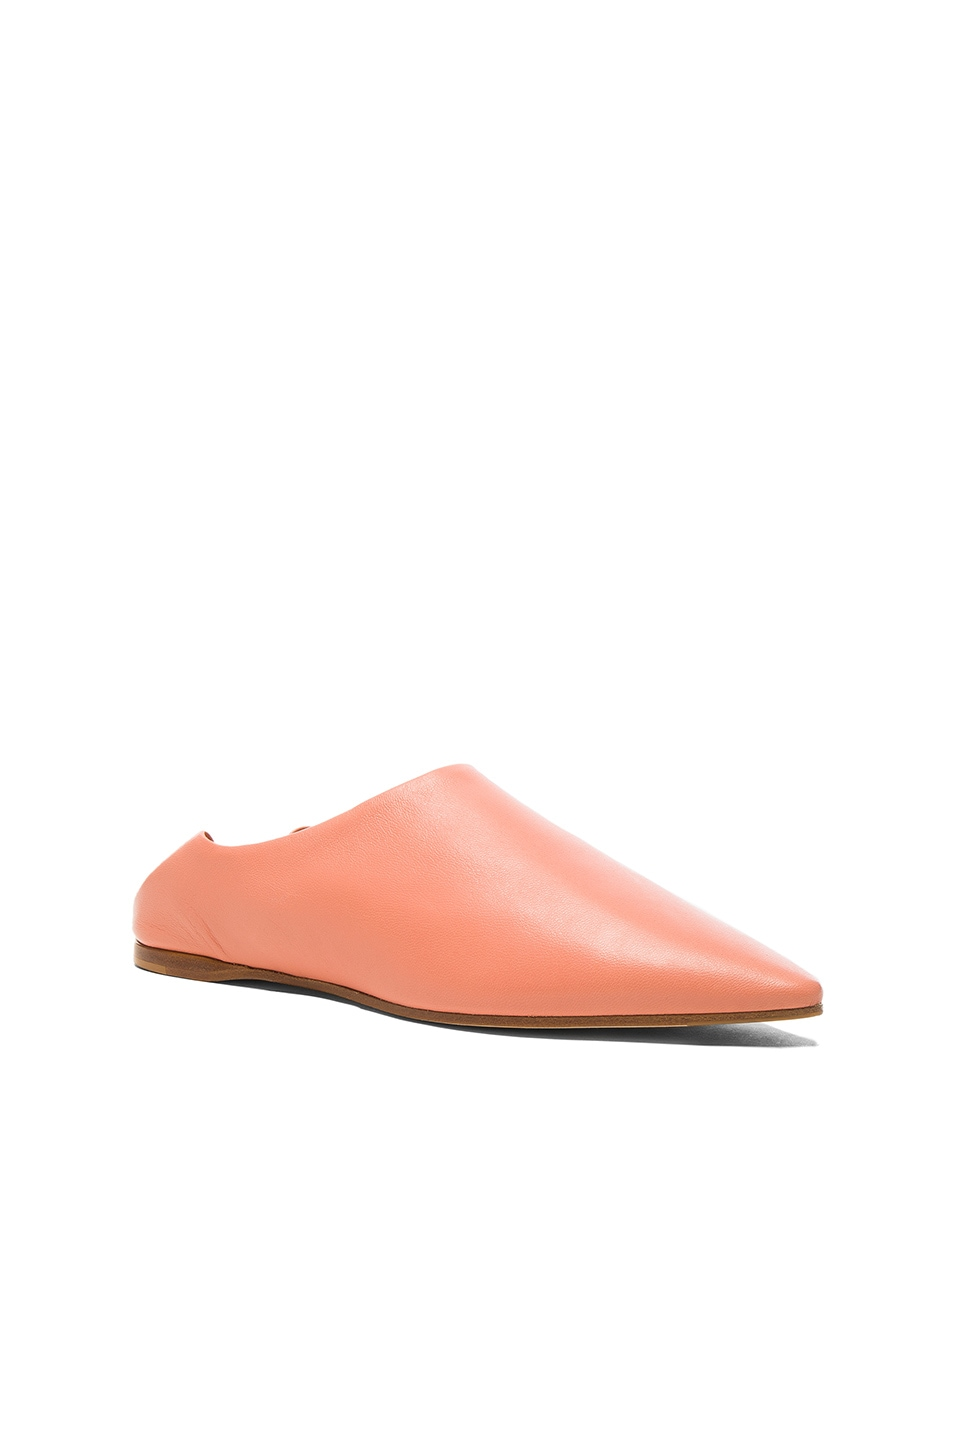 ACNE STUDIOS Leather Amina Babouche Slippers